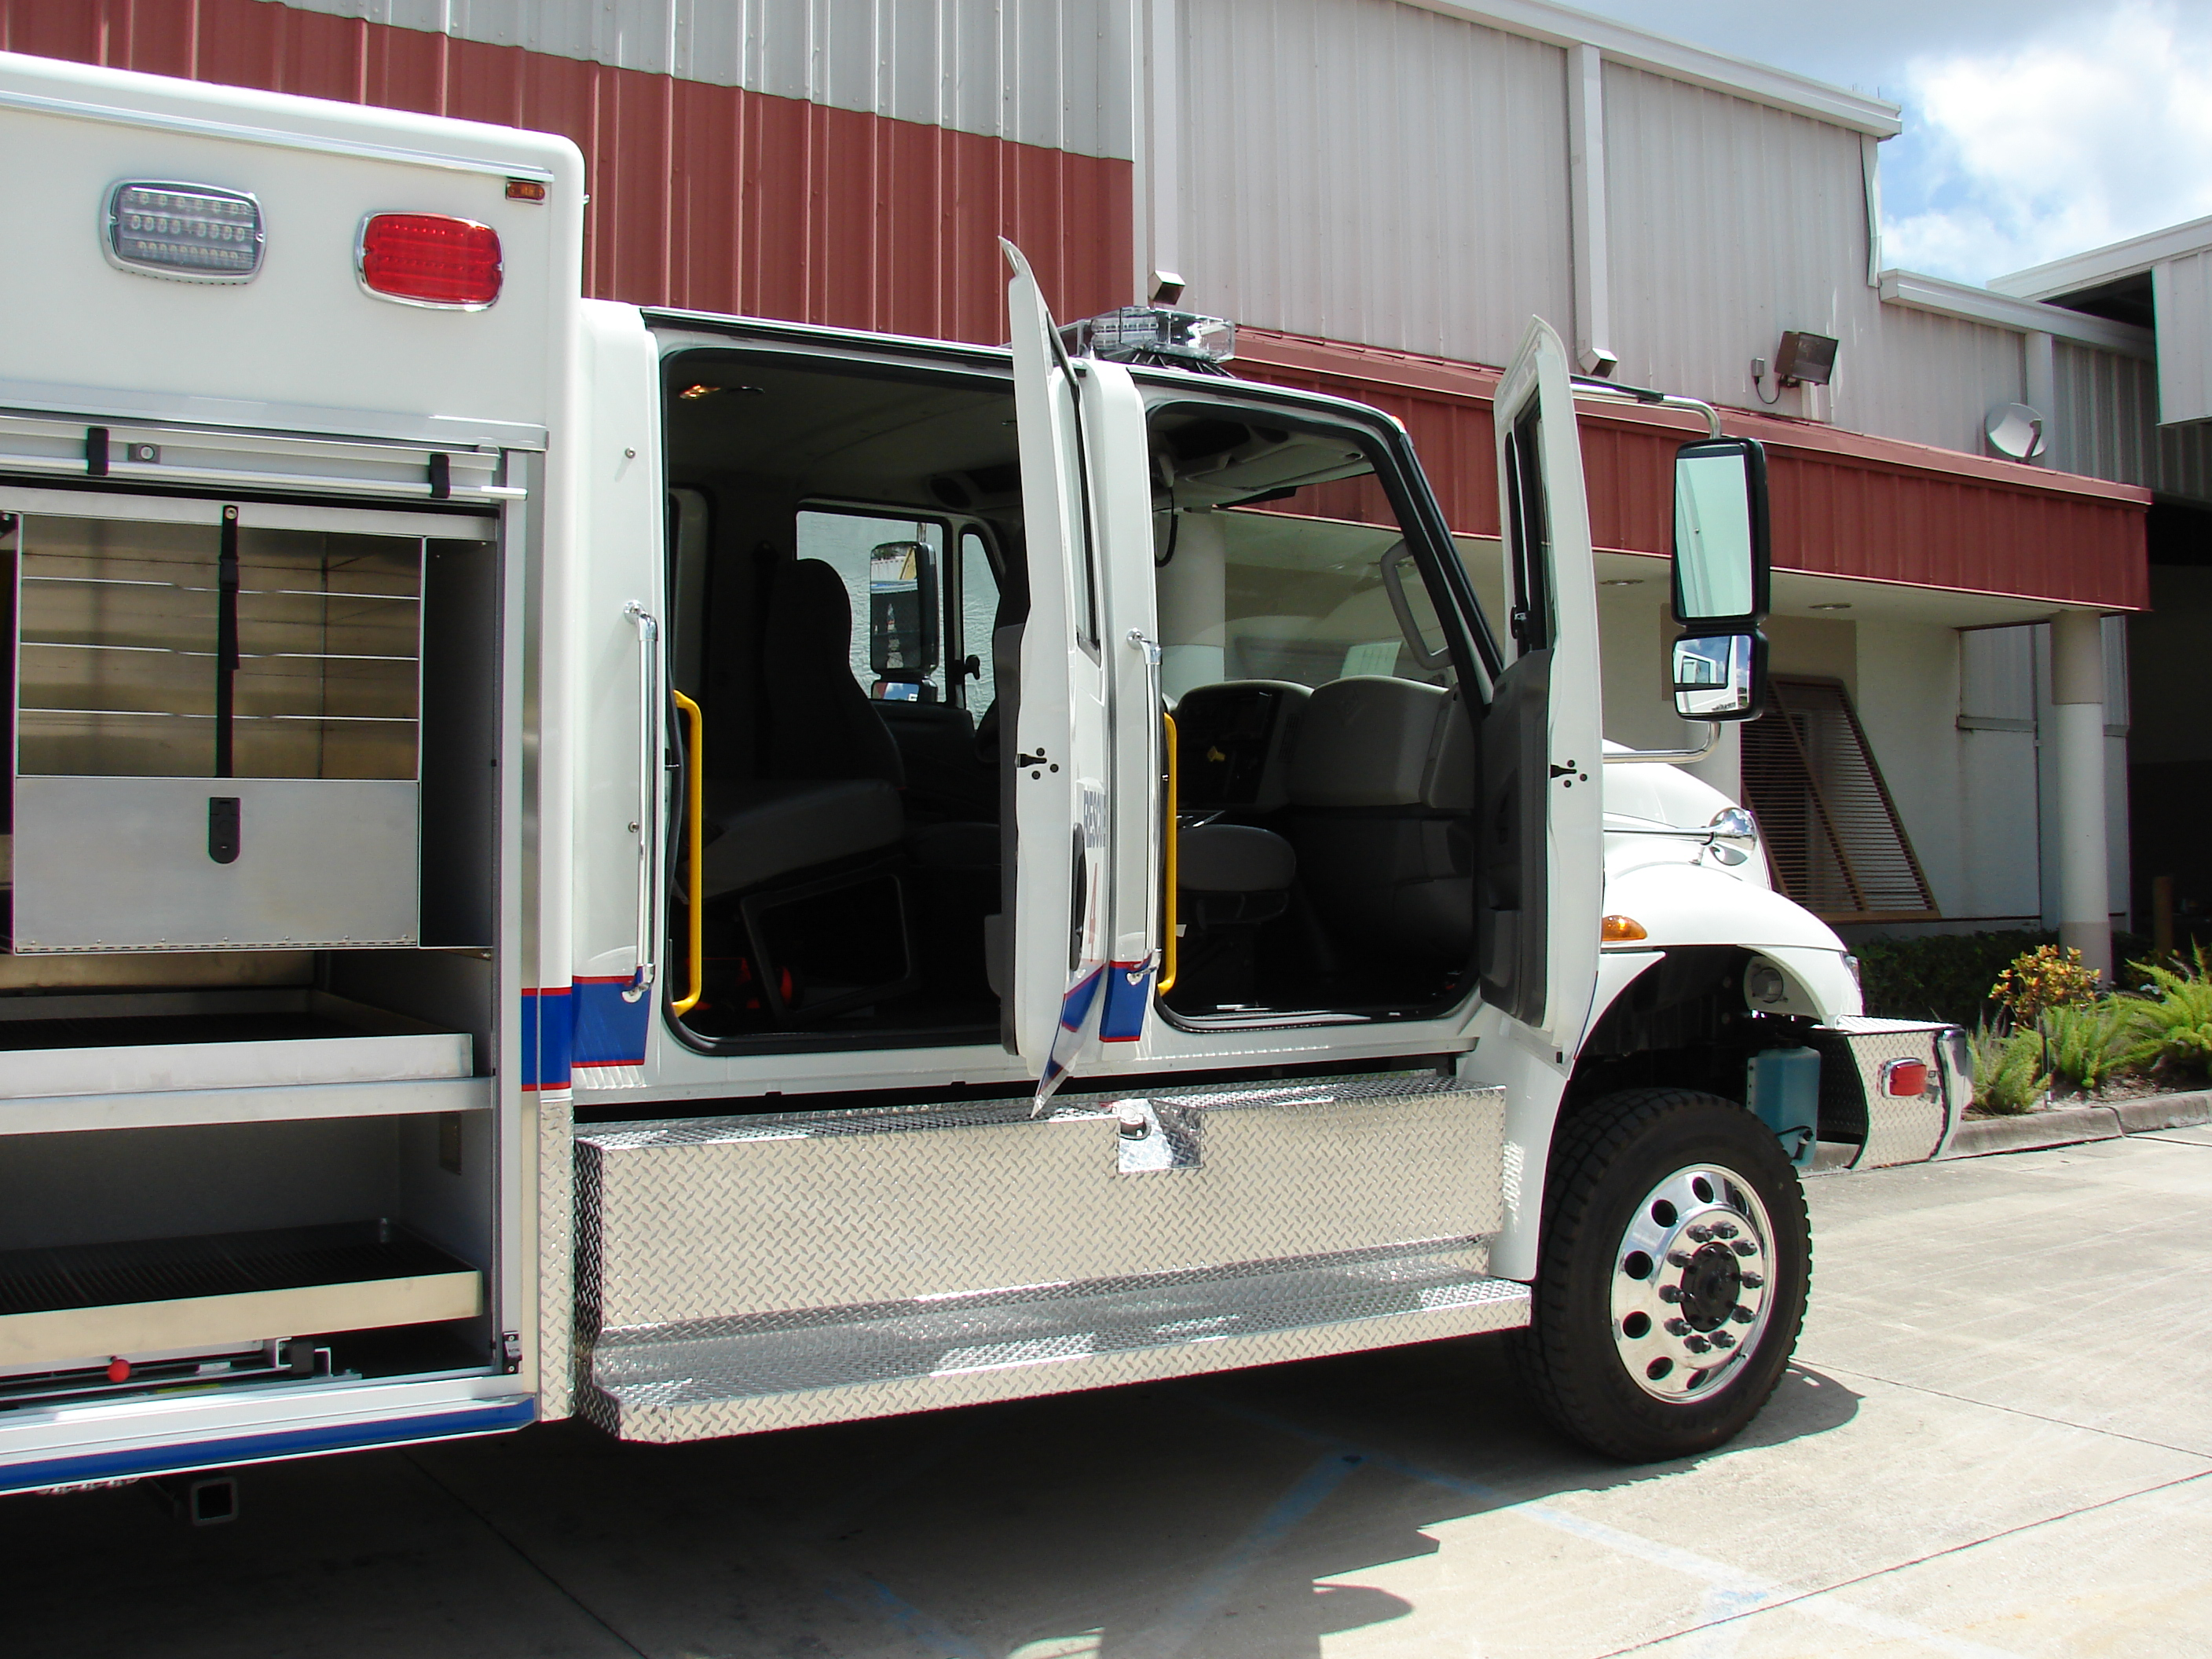 13-Ft. Non-Walk-In Fire Rescue Truck